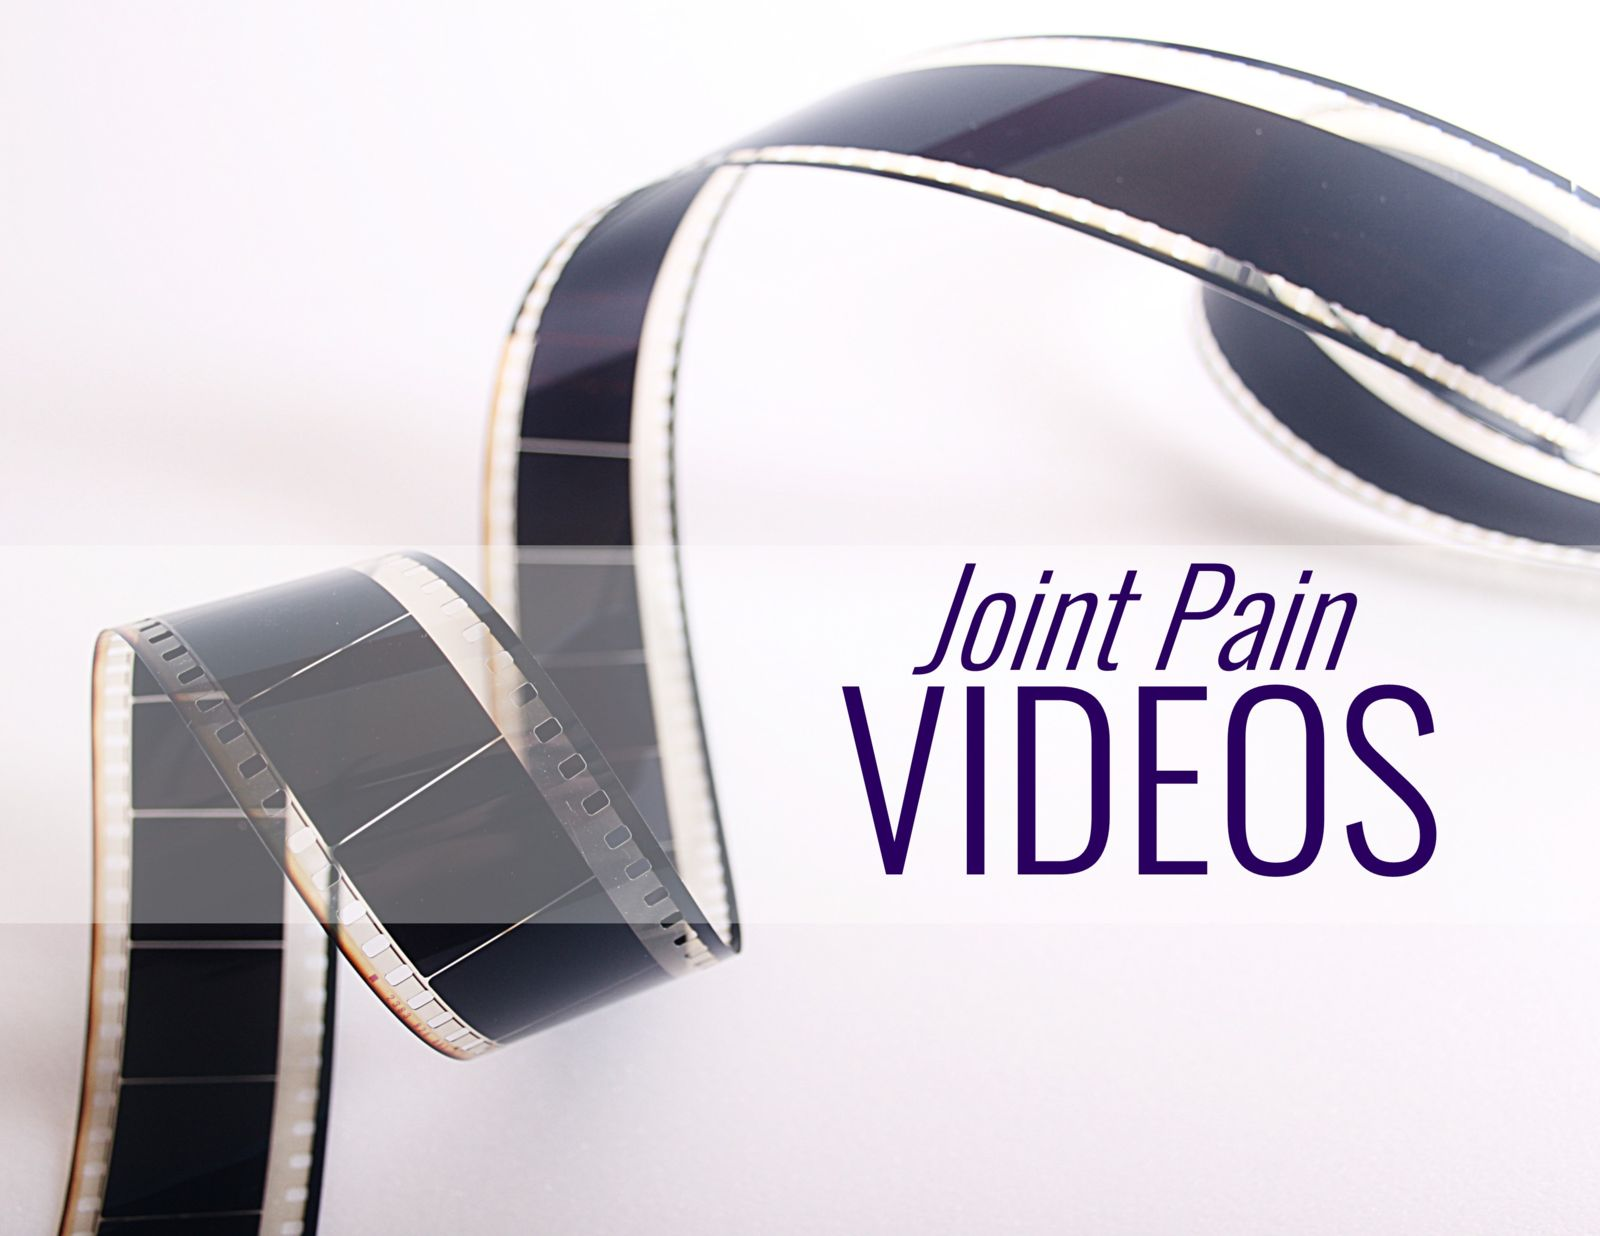 movie reel and the words Joint Pain Videos